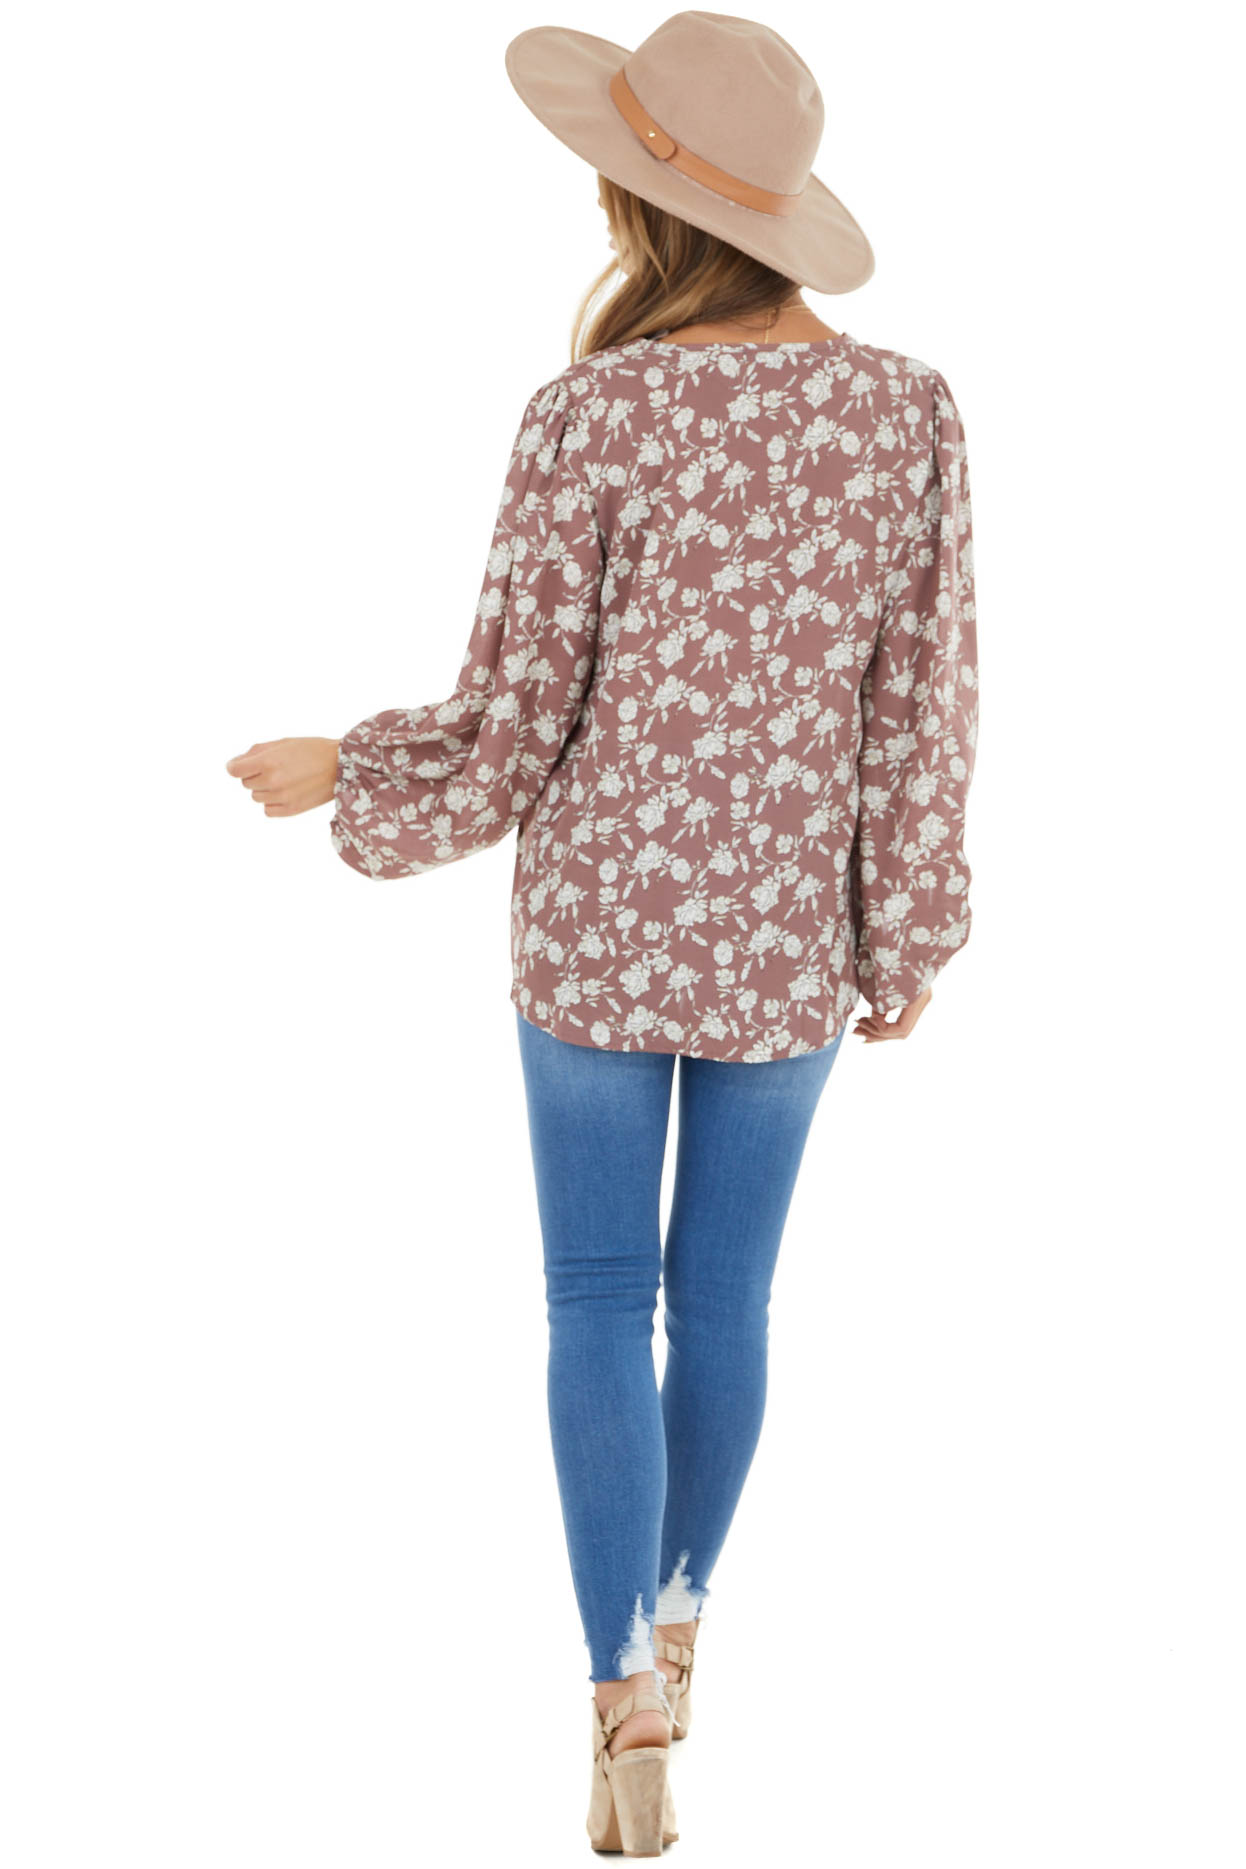 Dusty Mauve Floral Print V Neck Blouse with Bubble Sleeves